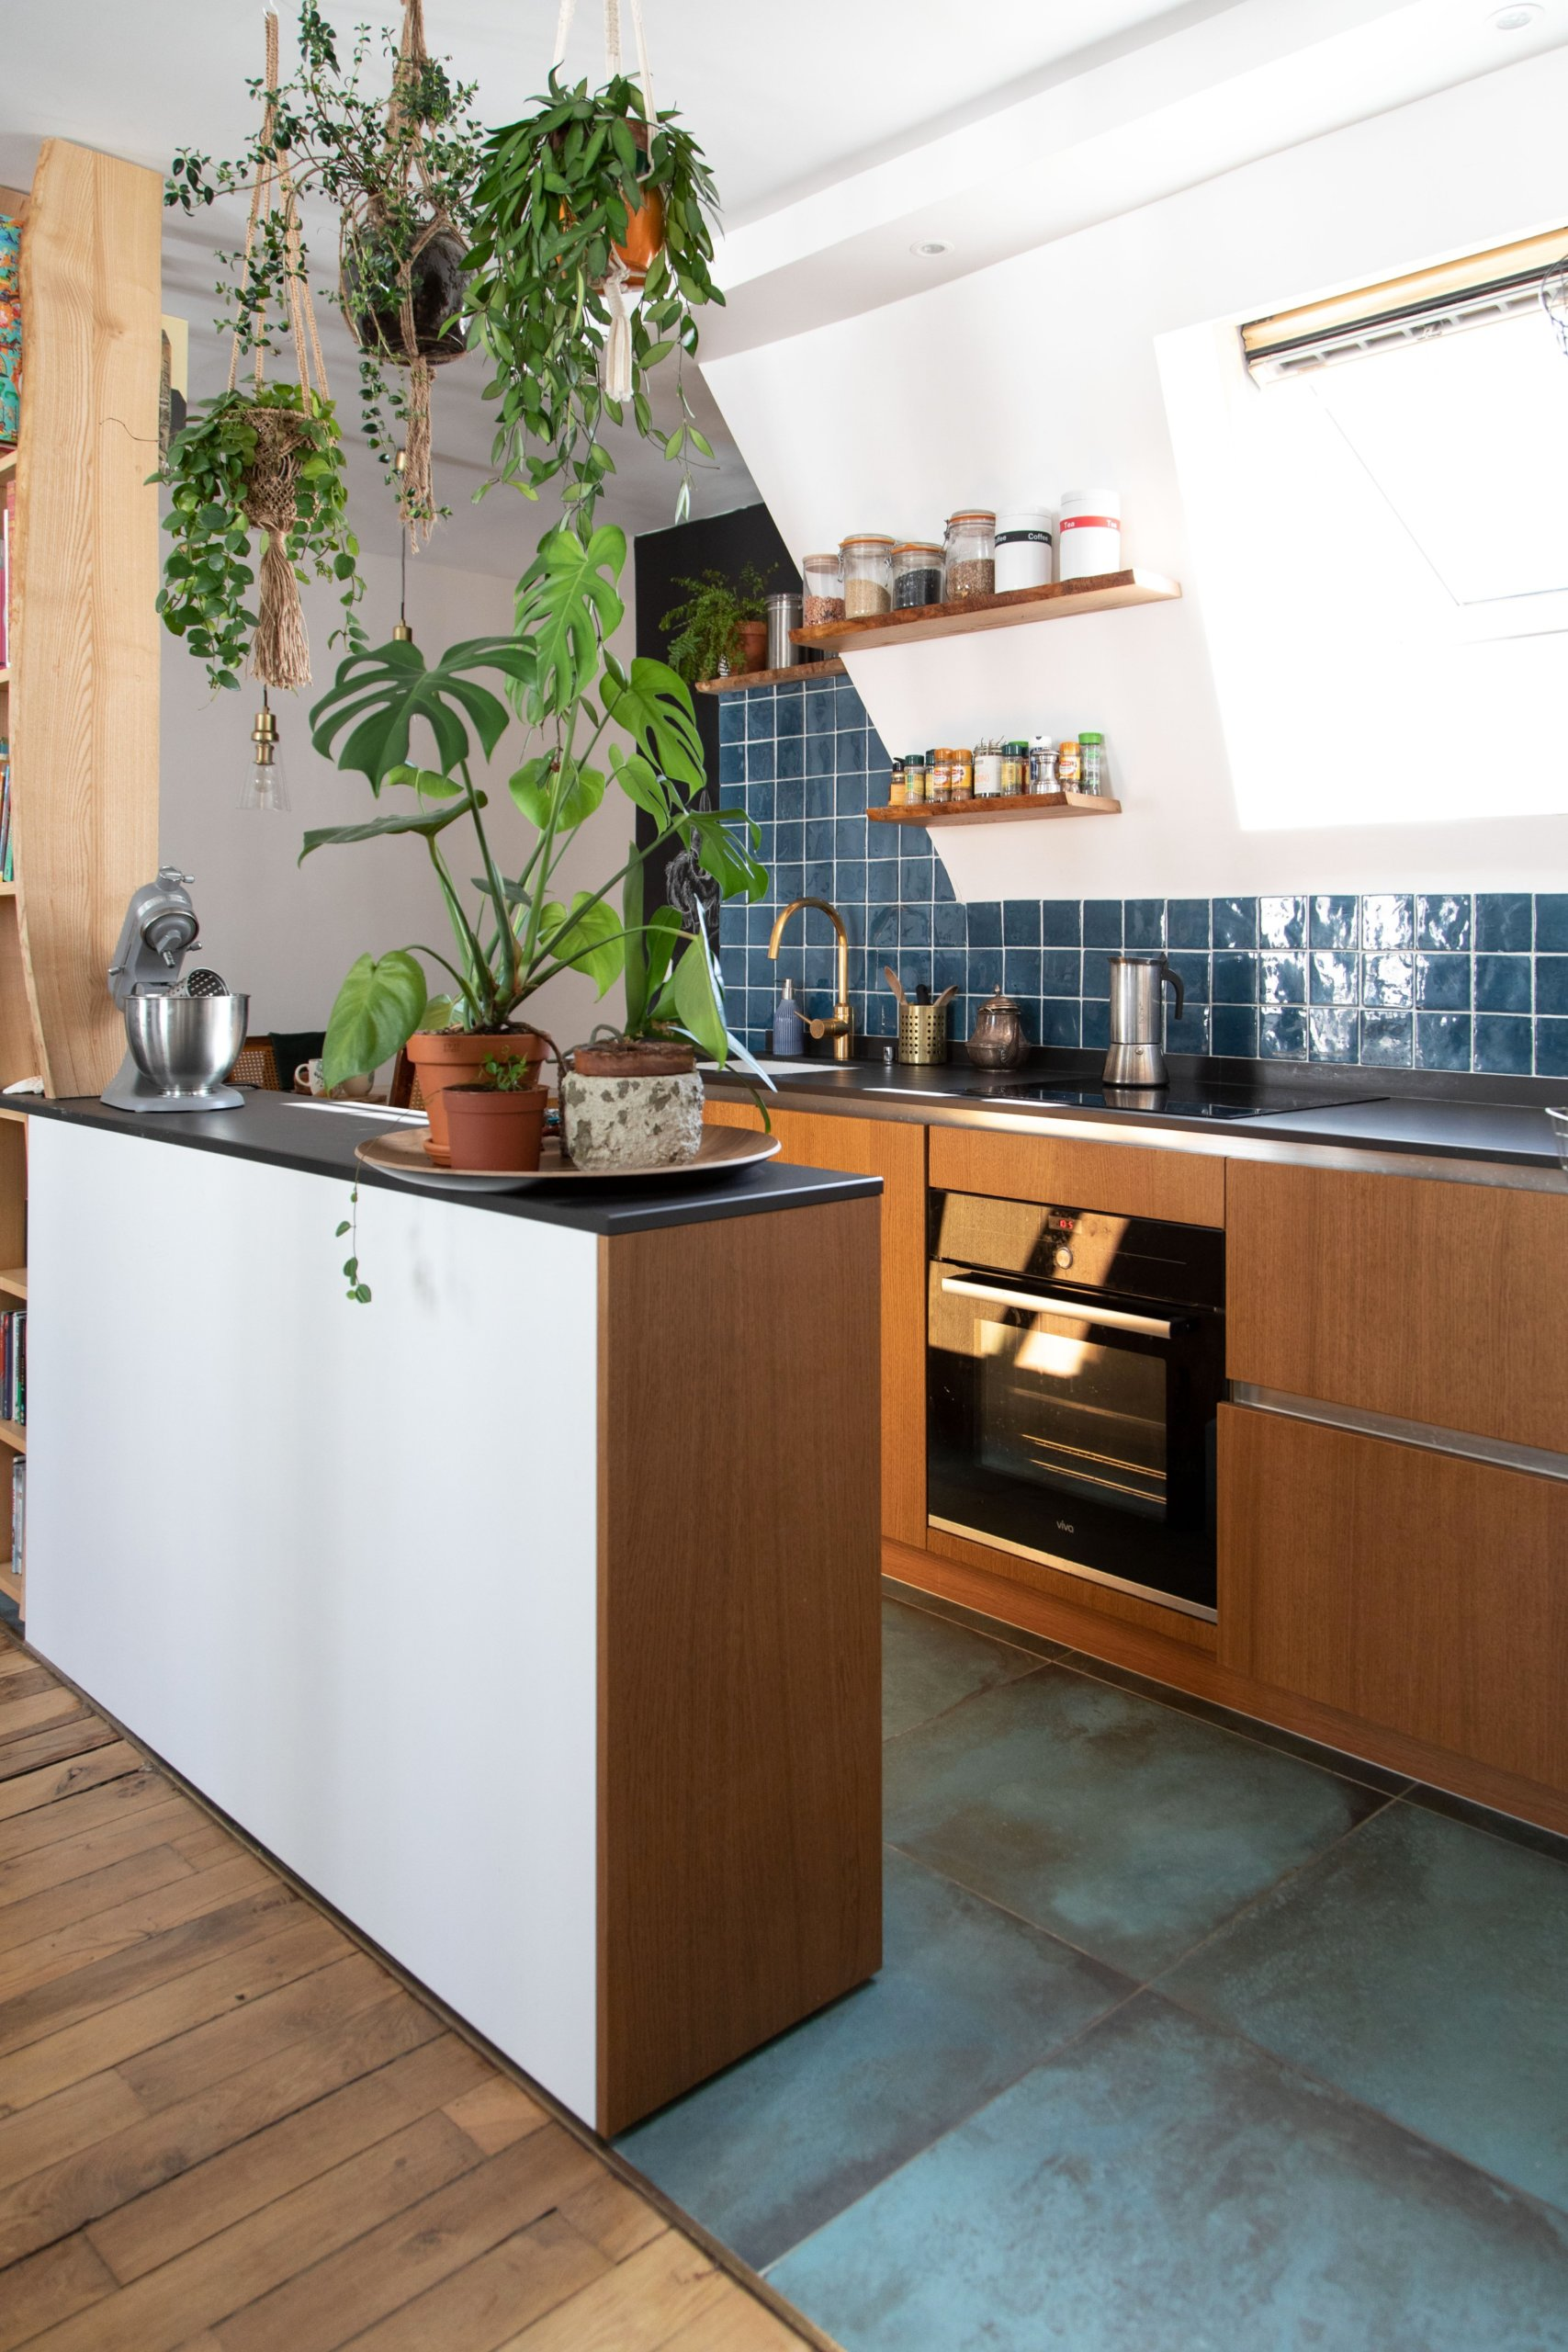 U-shaped-eclectic-kitchen-with-white-and-blue-tiles-and-wooden-cabinets-66363-scaled